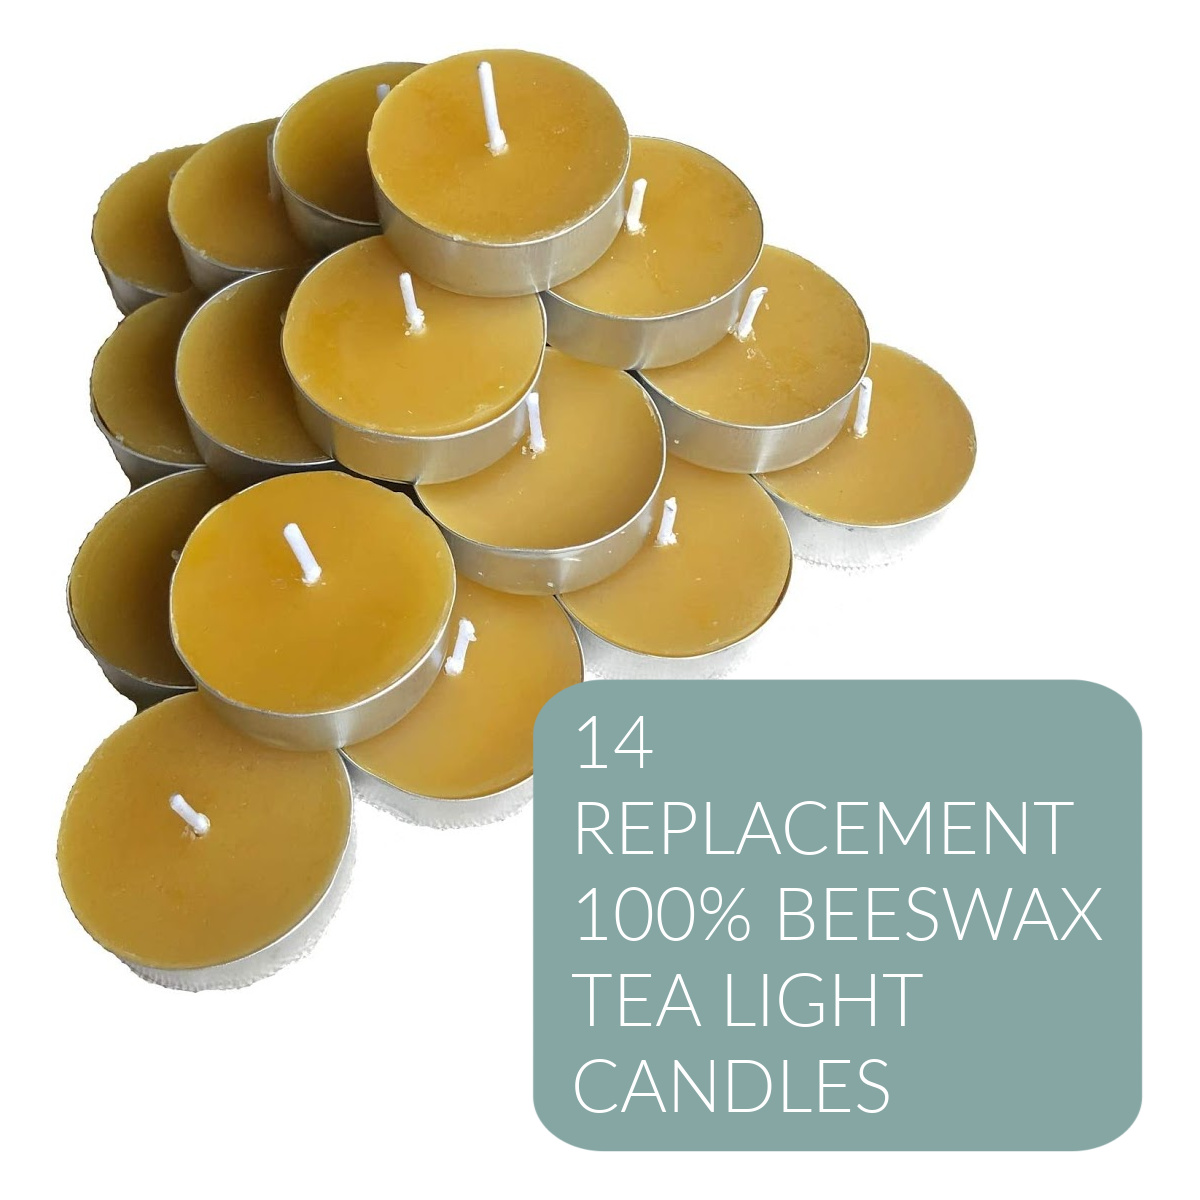 Replacement Beeswax Candle Sets (14 Tealight Candles)